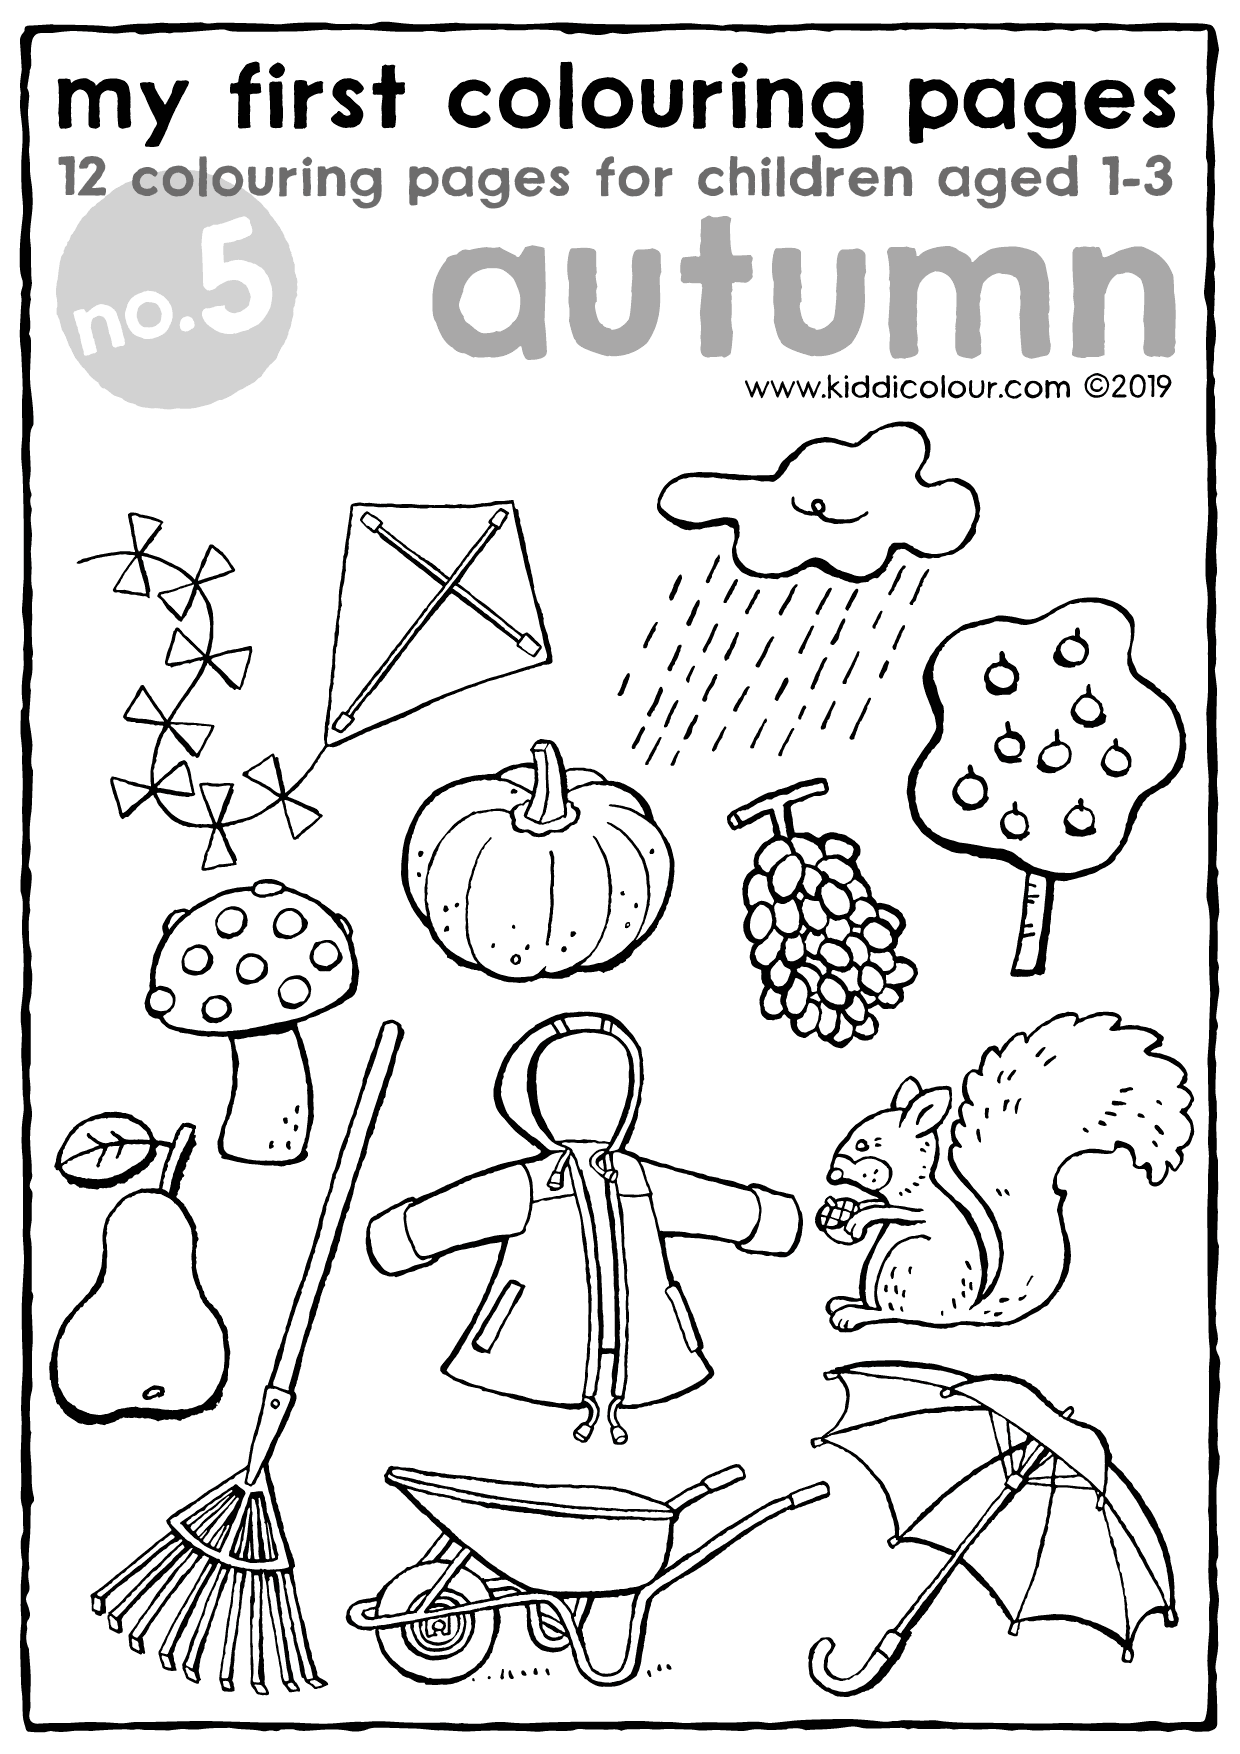 my first colouring pages no. 5: autumn